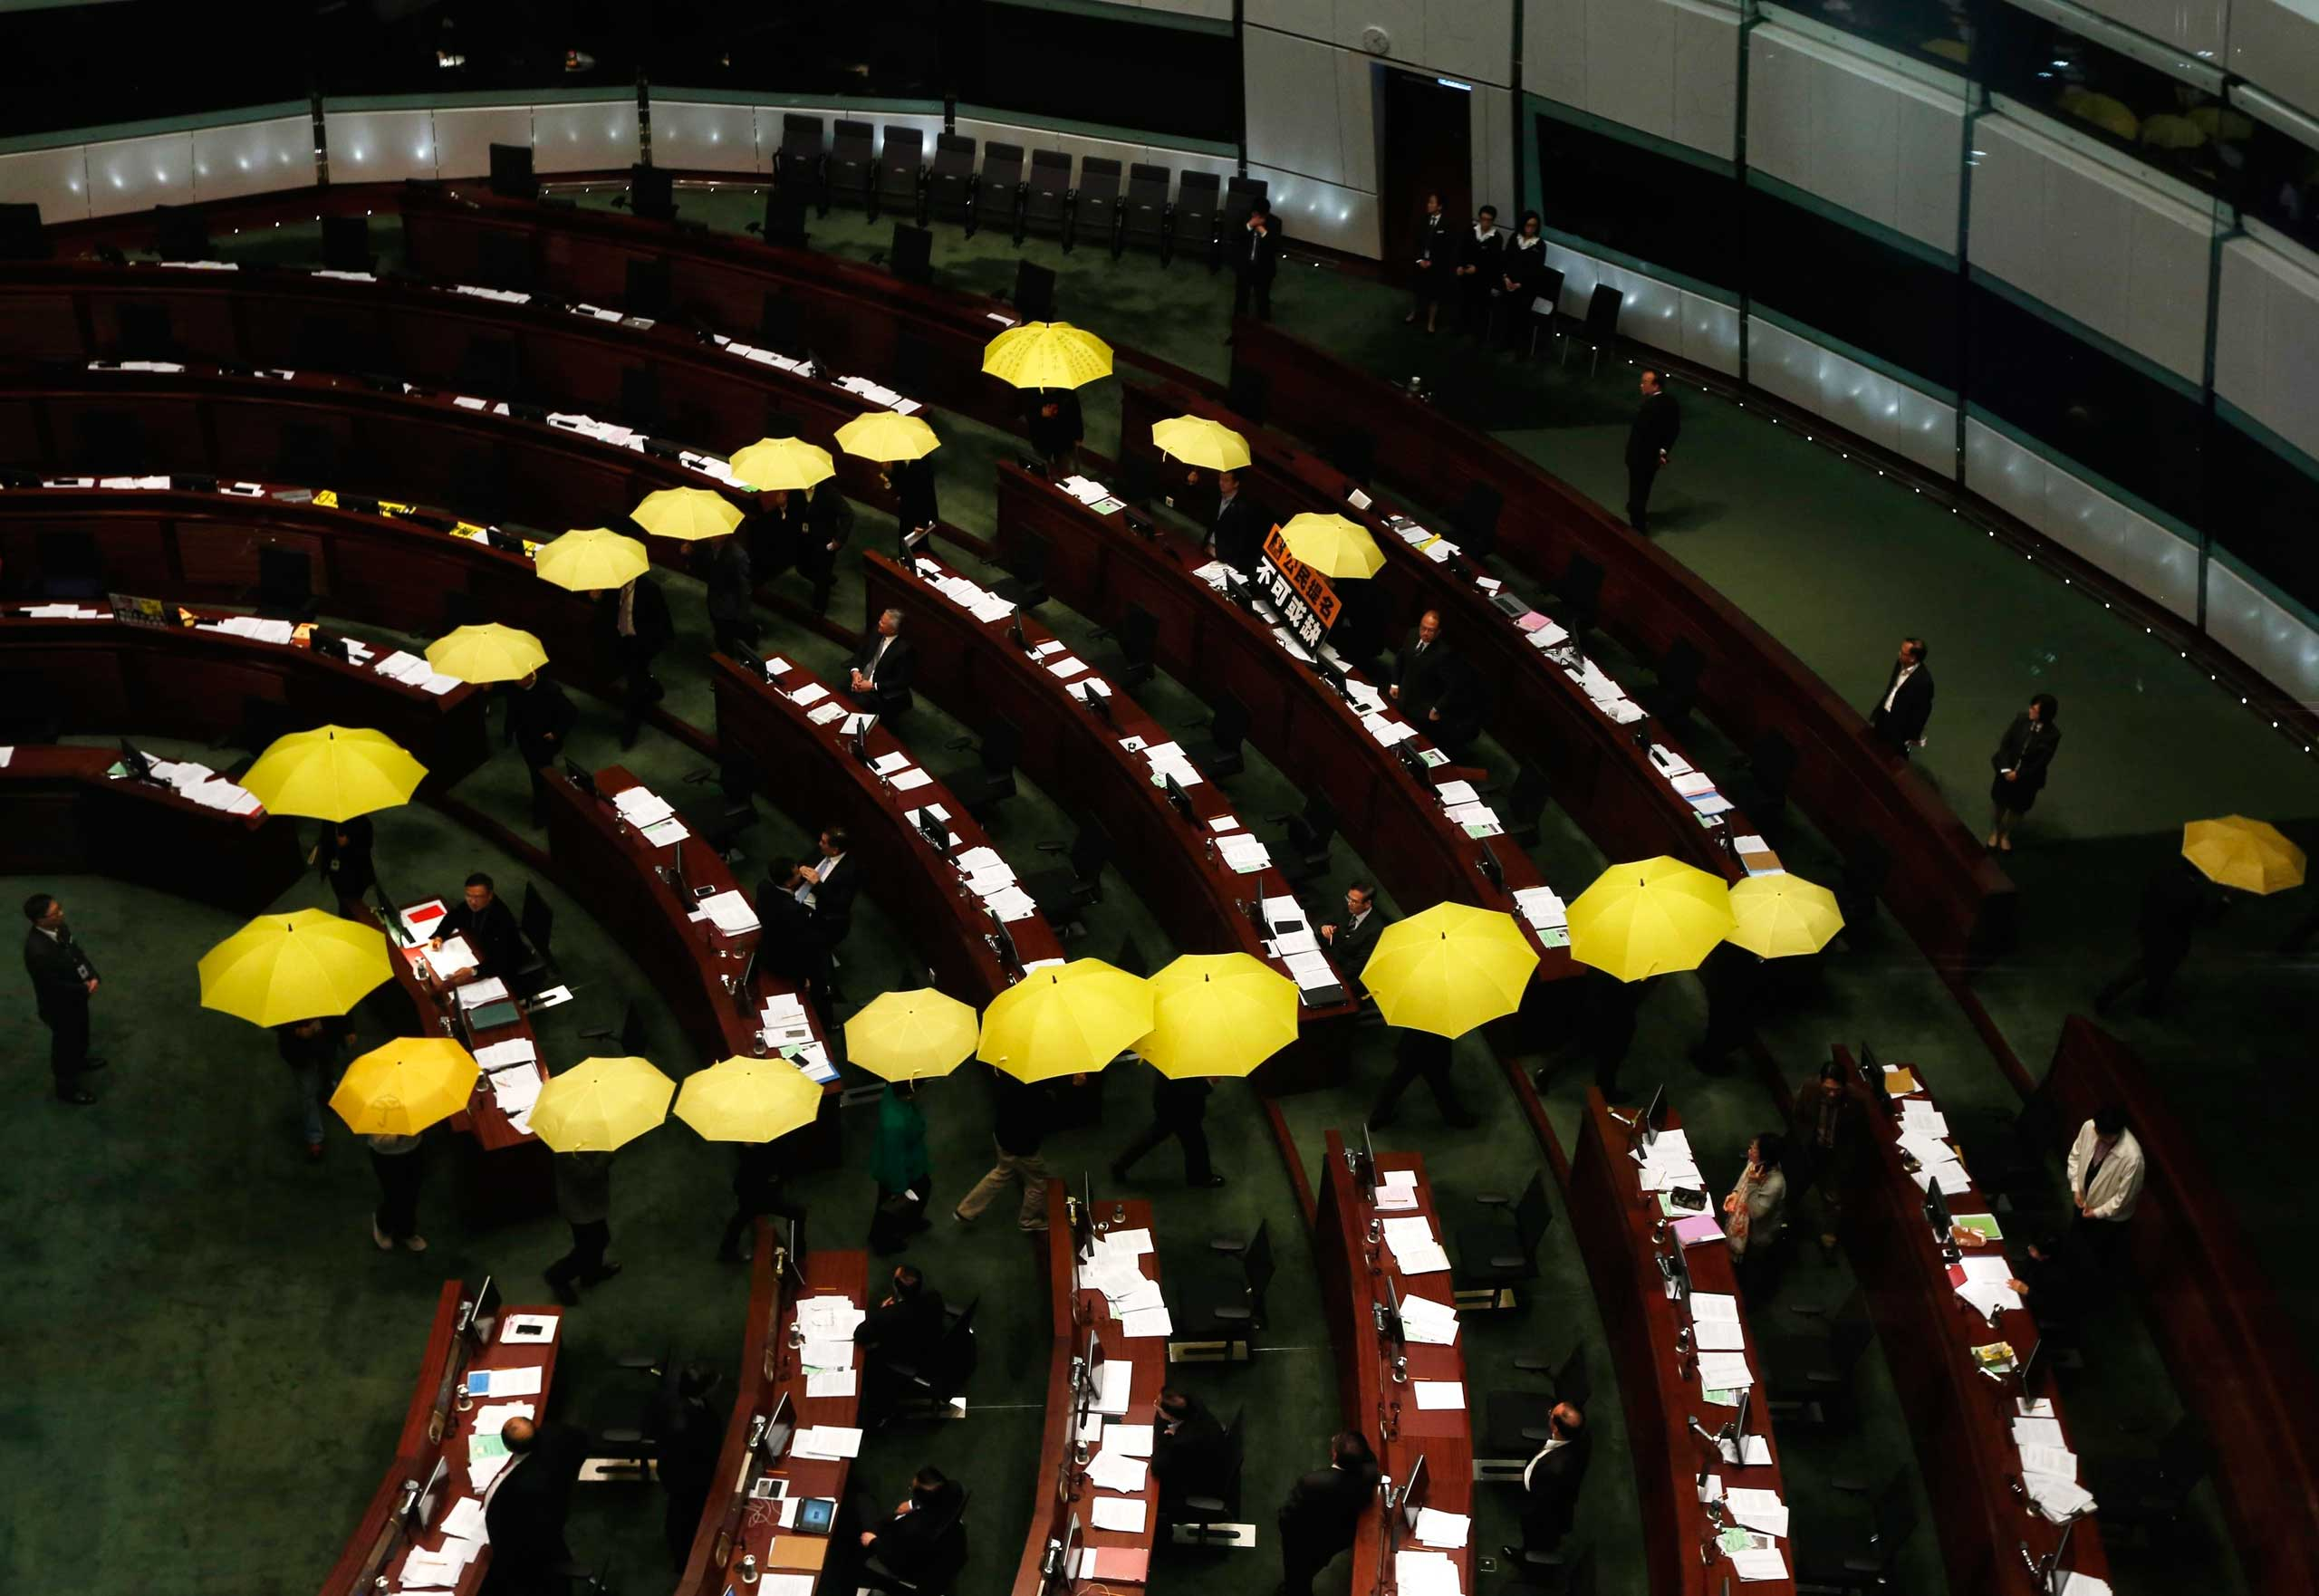 Jan. 7, 2015. Pro-democracy lawmakers carrying yellow umbrellas, symbols for the Occupy Central movement, leave in the middle of a Legislative Council meeting as a gesture to boycott the government in Hong Kong.